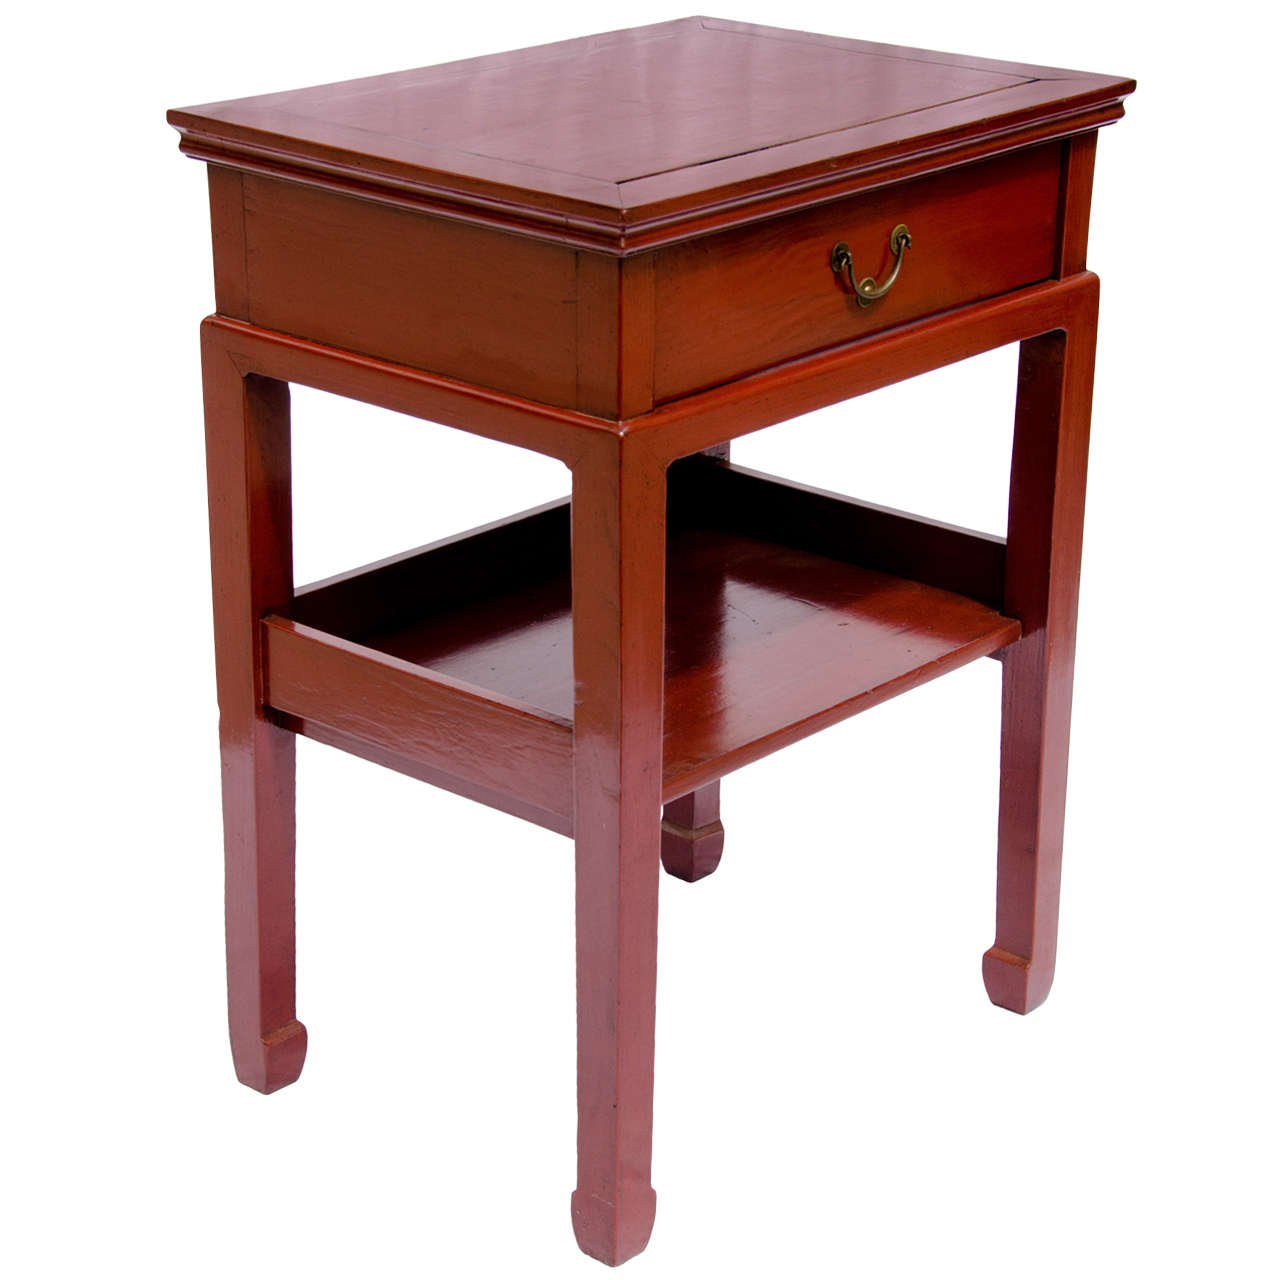 Turn of the century q 39 ing dynasty red lacquered side table for Red side table